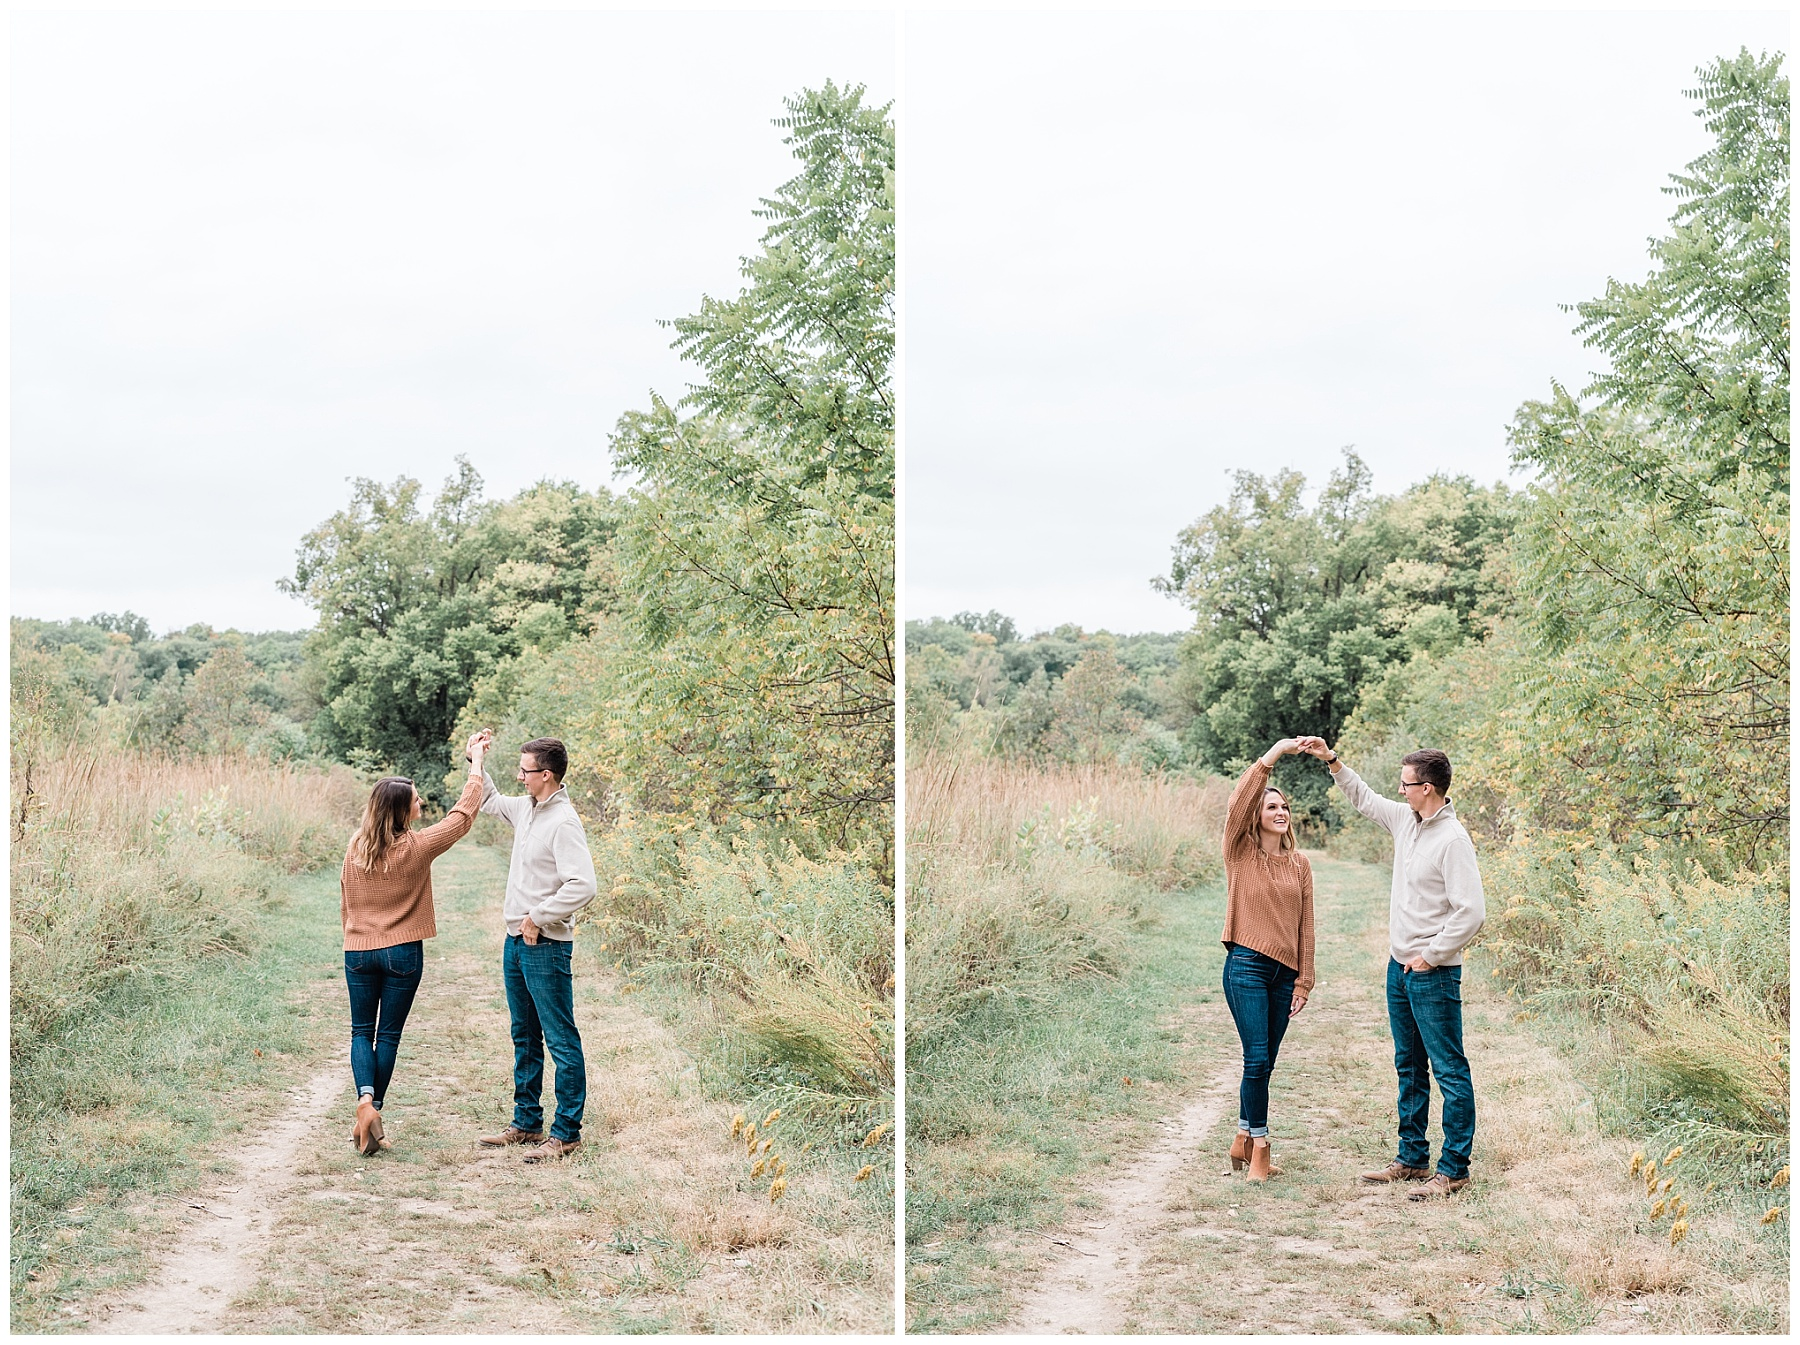 Autumn Engagement Session at Grindstone Nature Trail Columbia Missouri by Kelsi Kliethermes Photography_0004.jpg